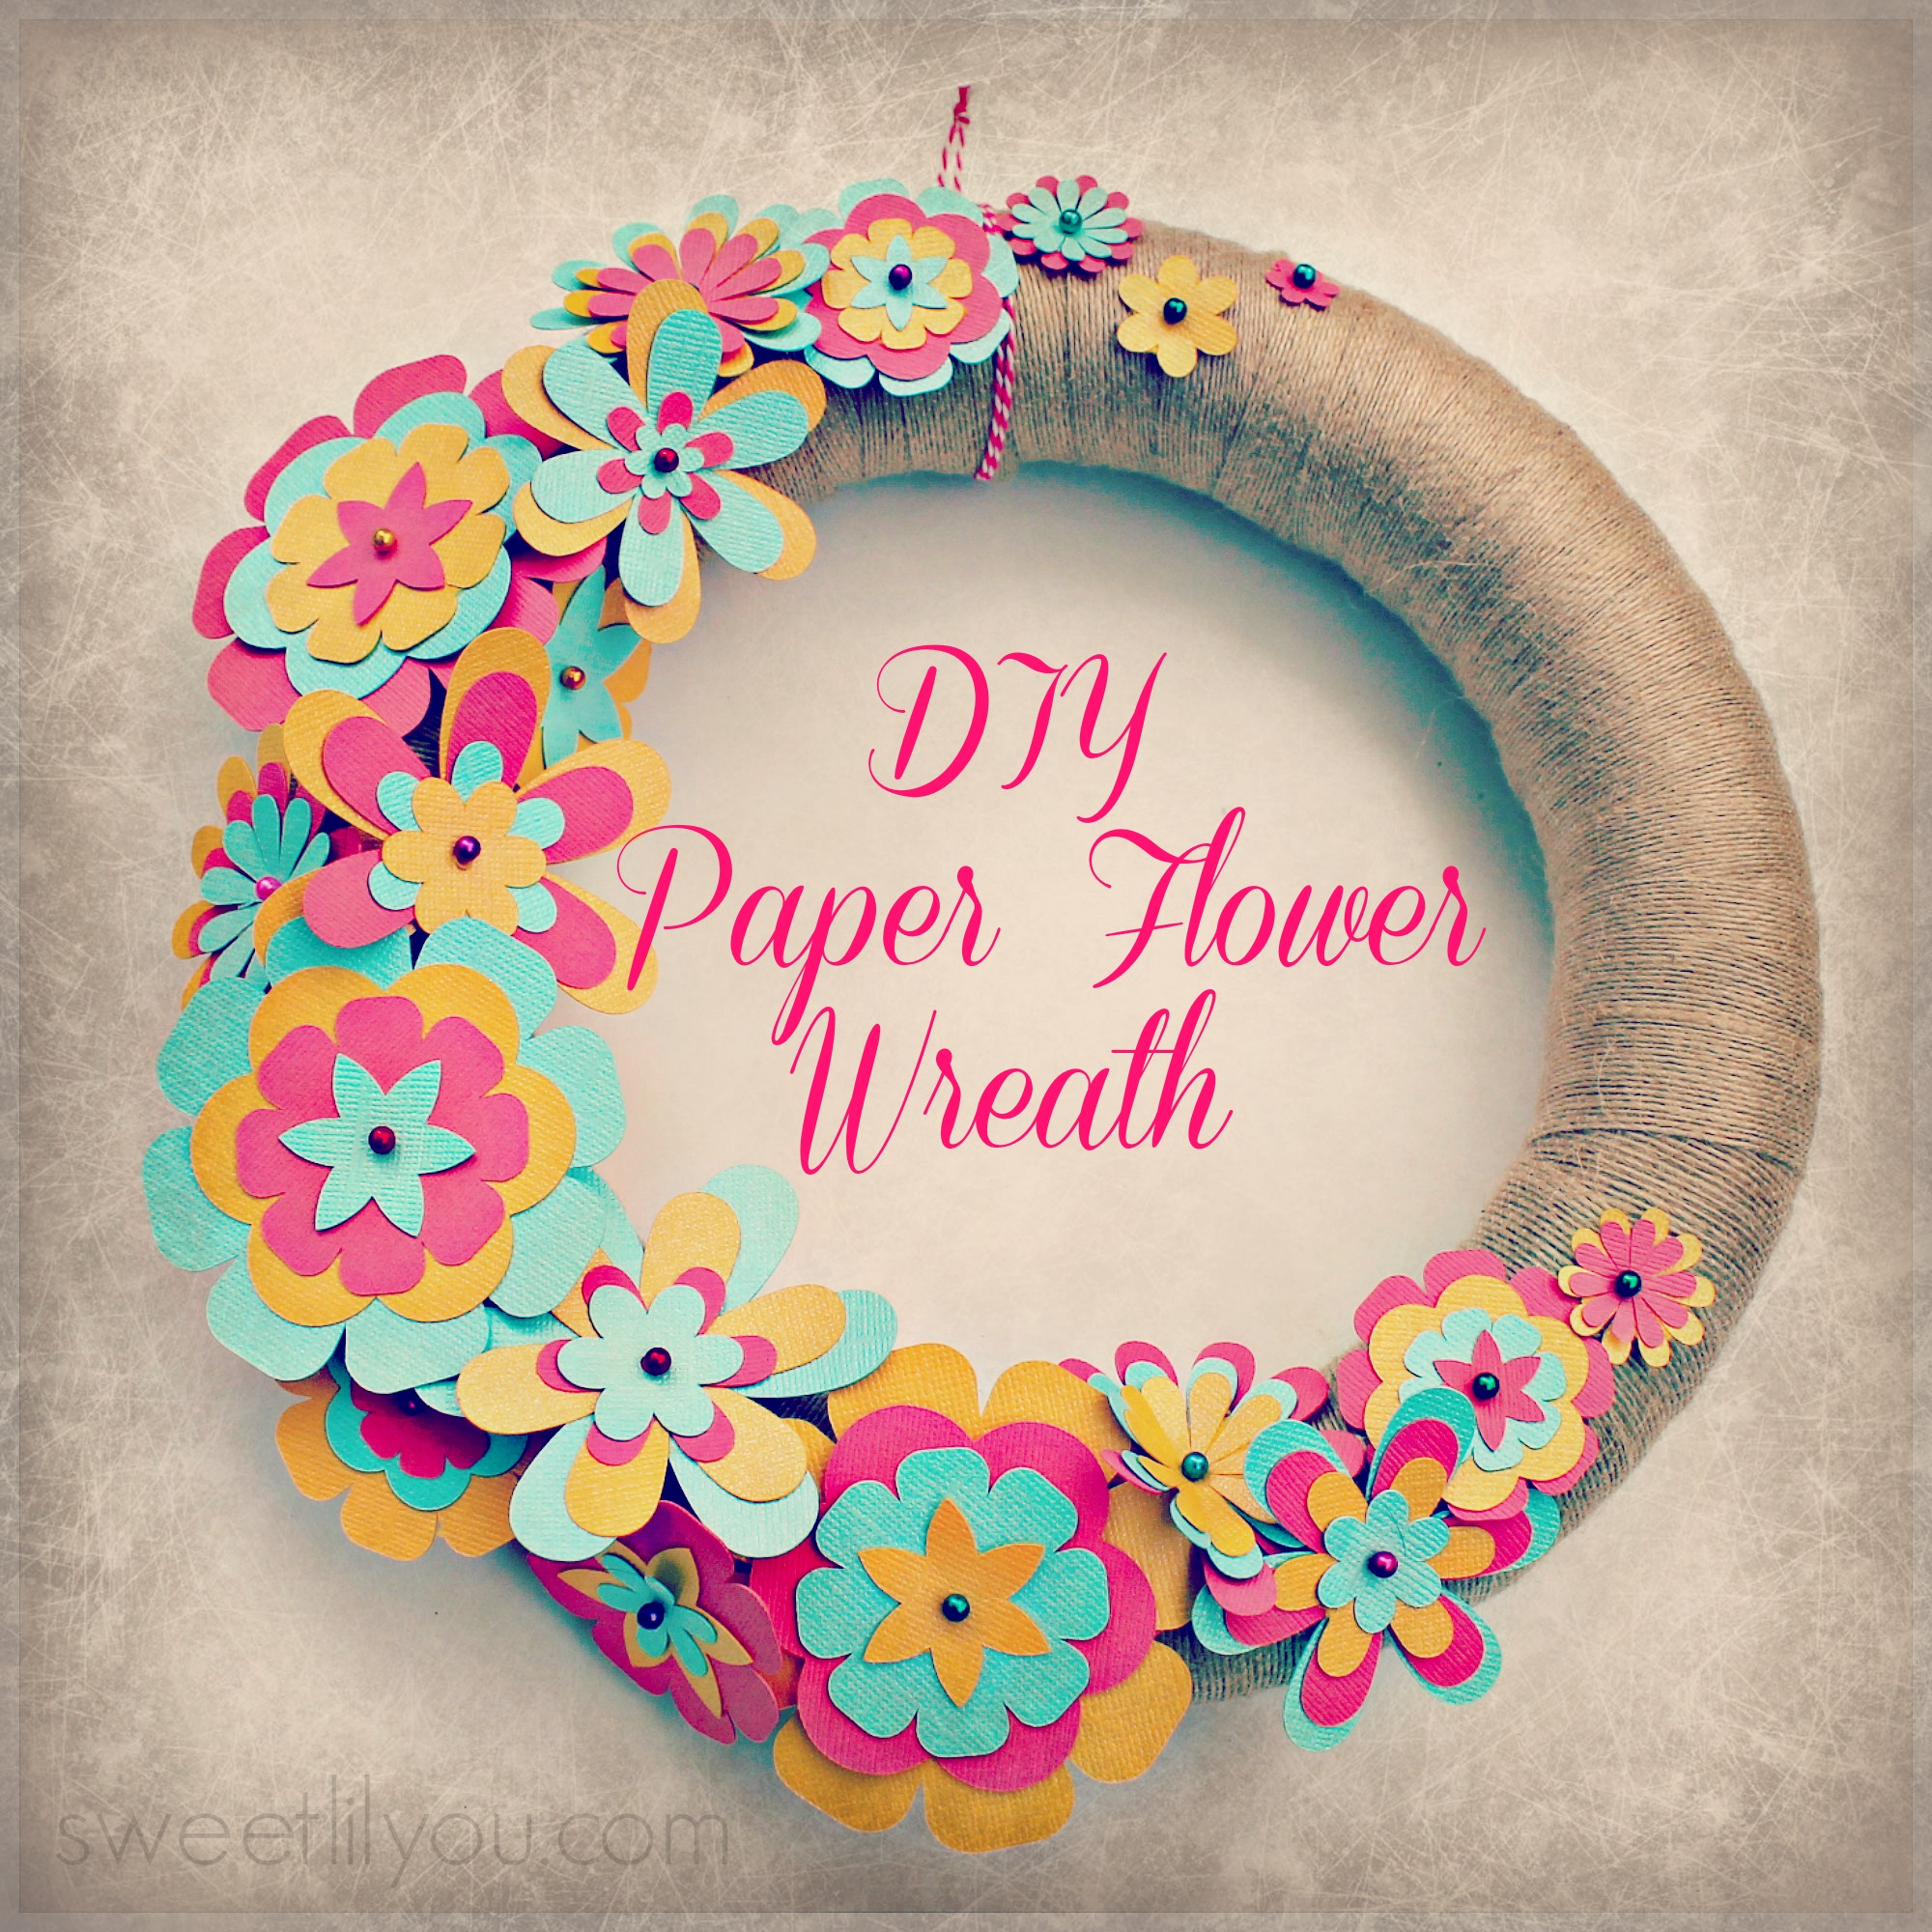 Easy diy paper flower wreath sweet lil you Home decor crafts with paper